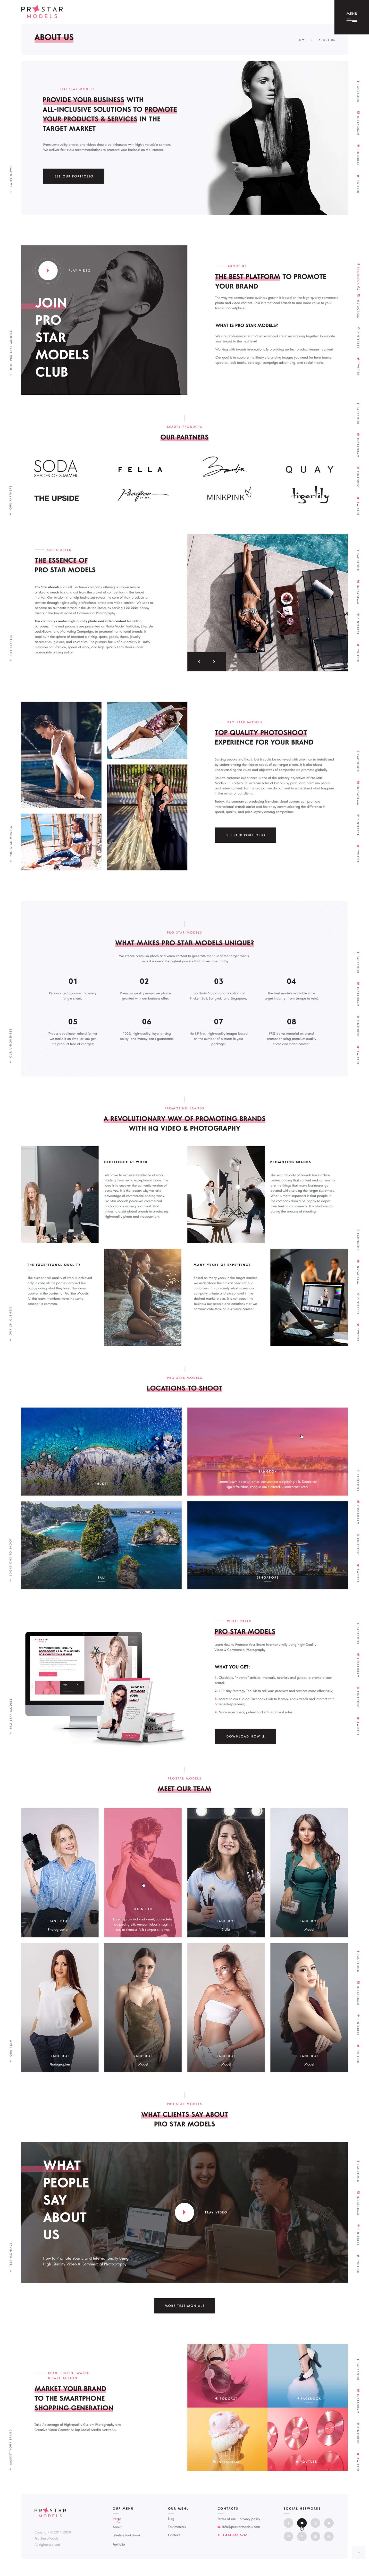 02_About_Prostarmodels_(ReDesign)__1758